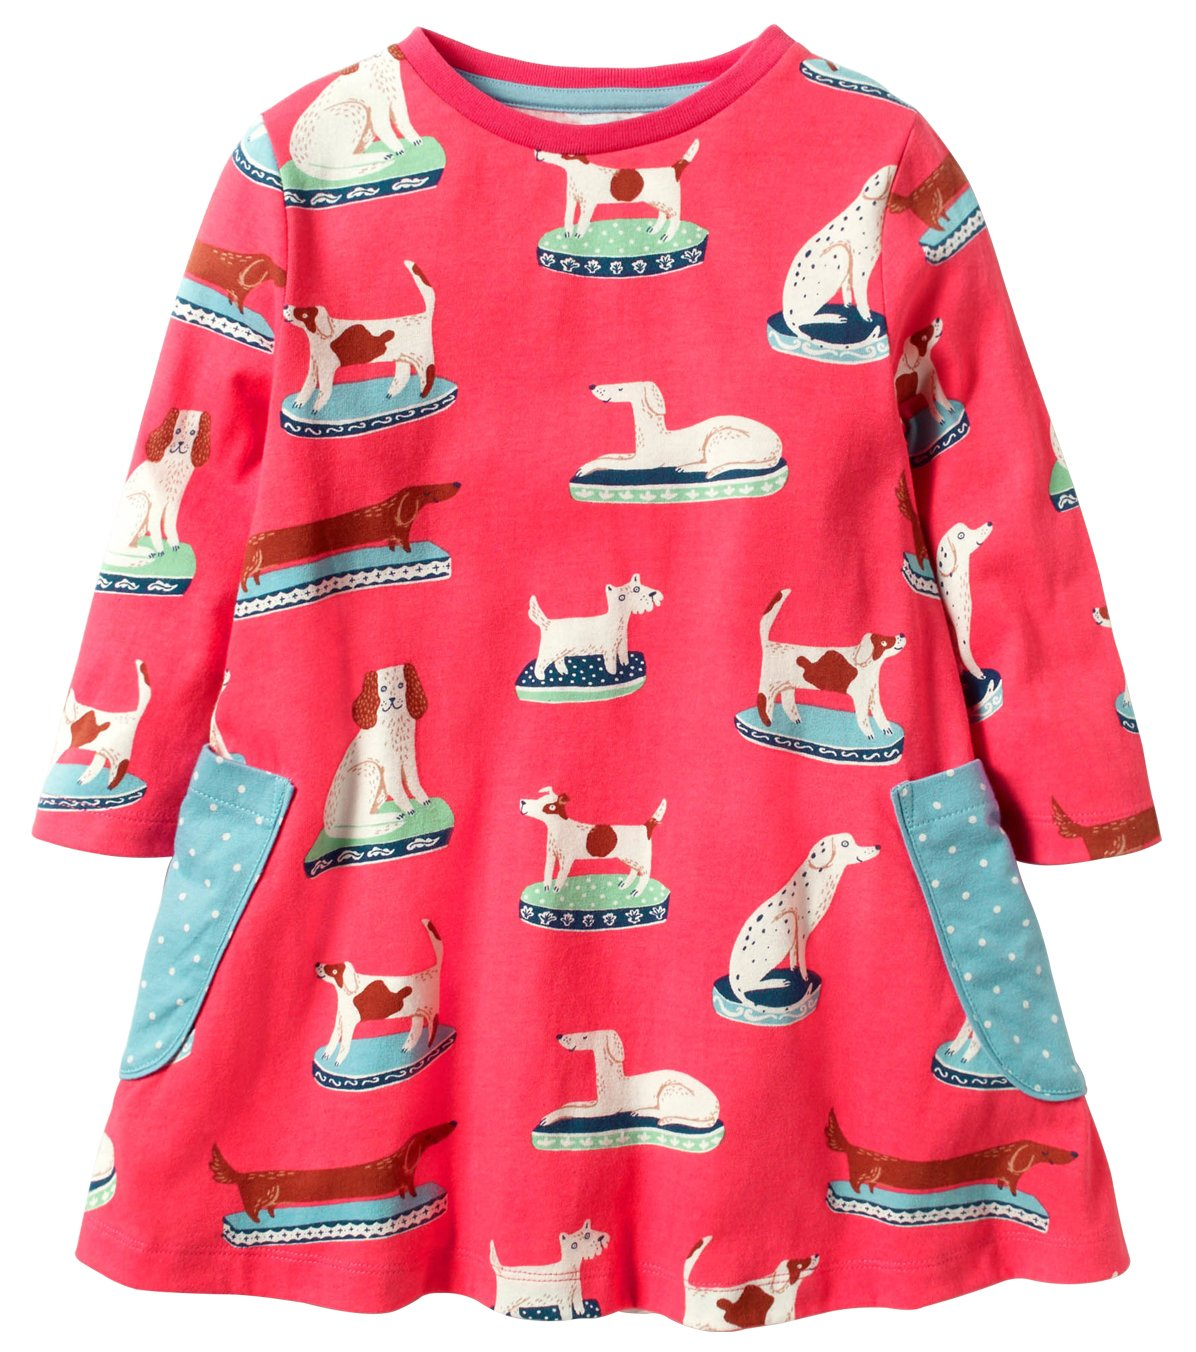 Fiream Girls Cotton Casual Longsleeve Cartoon Dresses (7T/7-8YRS, S0358) by Fiream (Image #1)